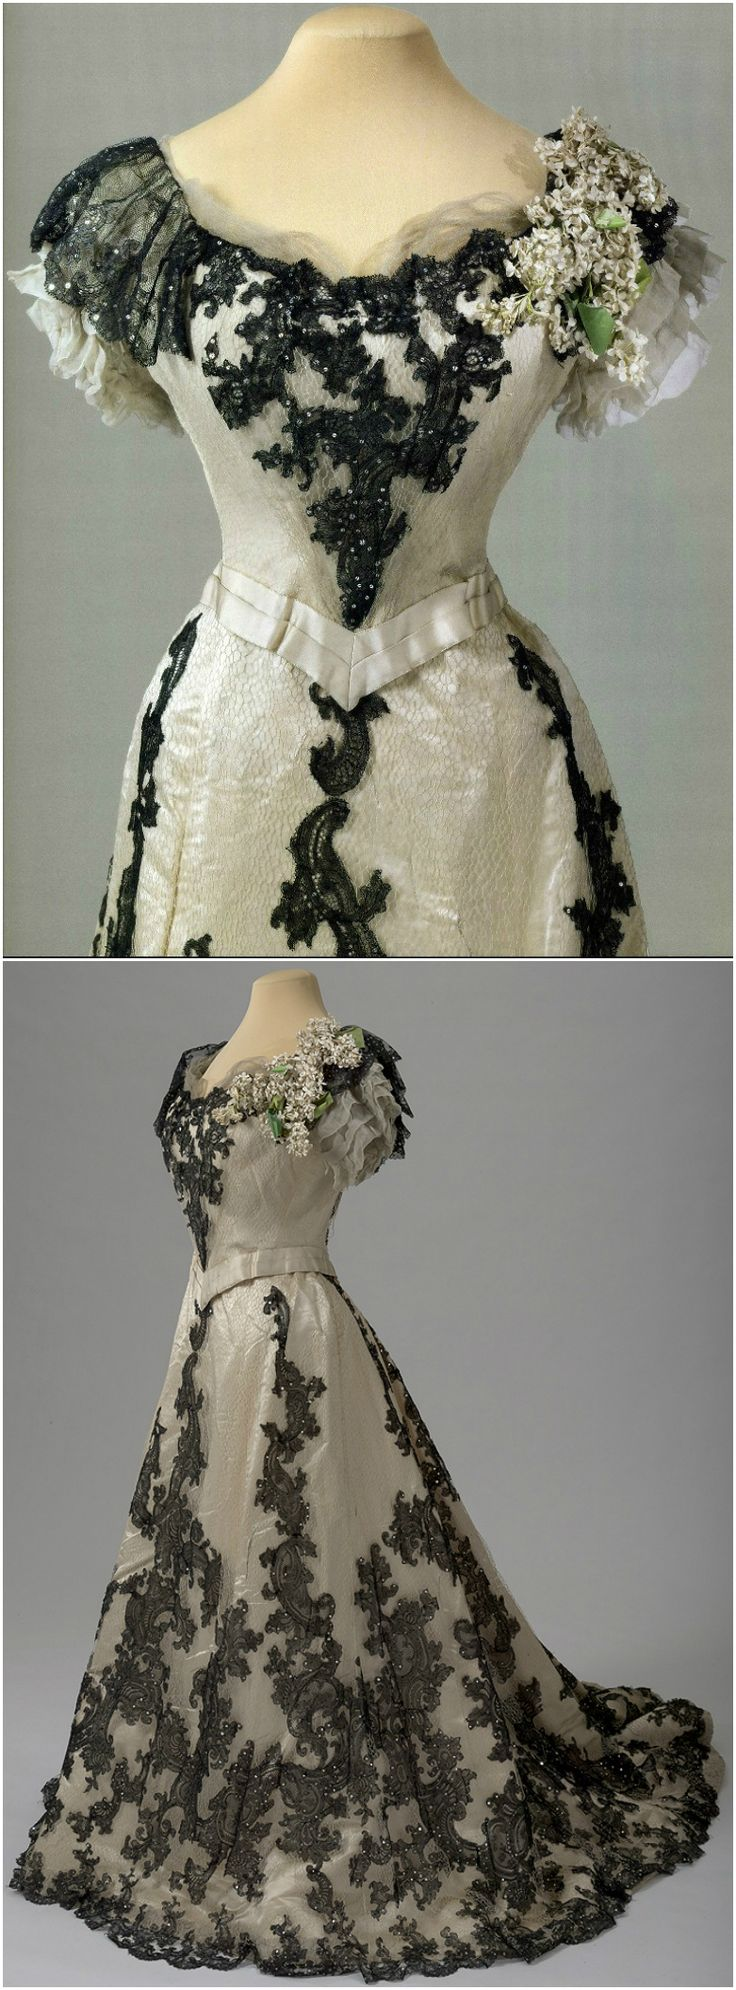 Ball gown of Empress Alexandra Fyodorovna, by G. & E. Spitzer Atelier, Vienna, Austria, 1900-01, at the State Hermitage Museum